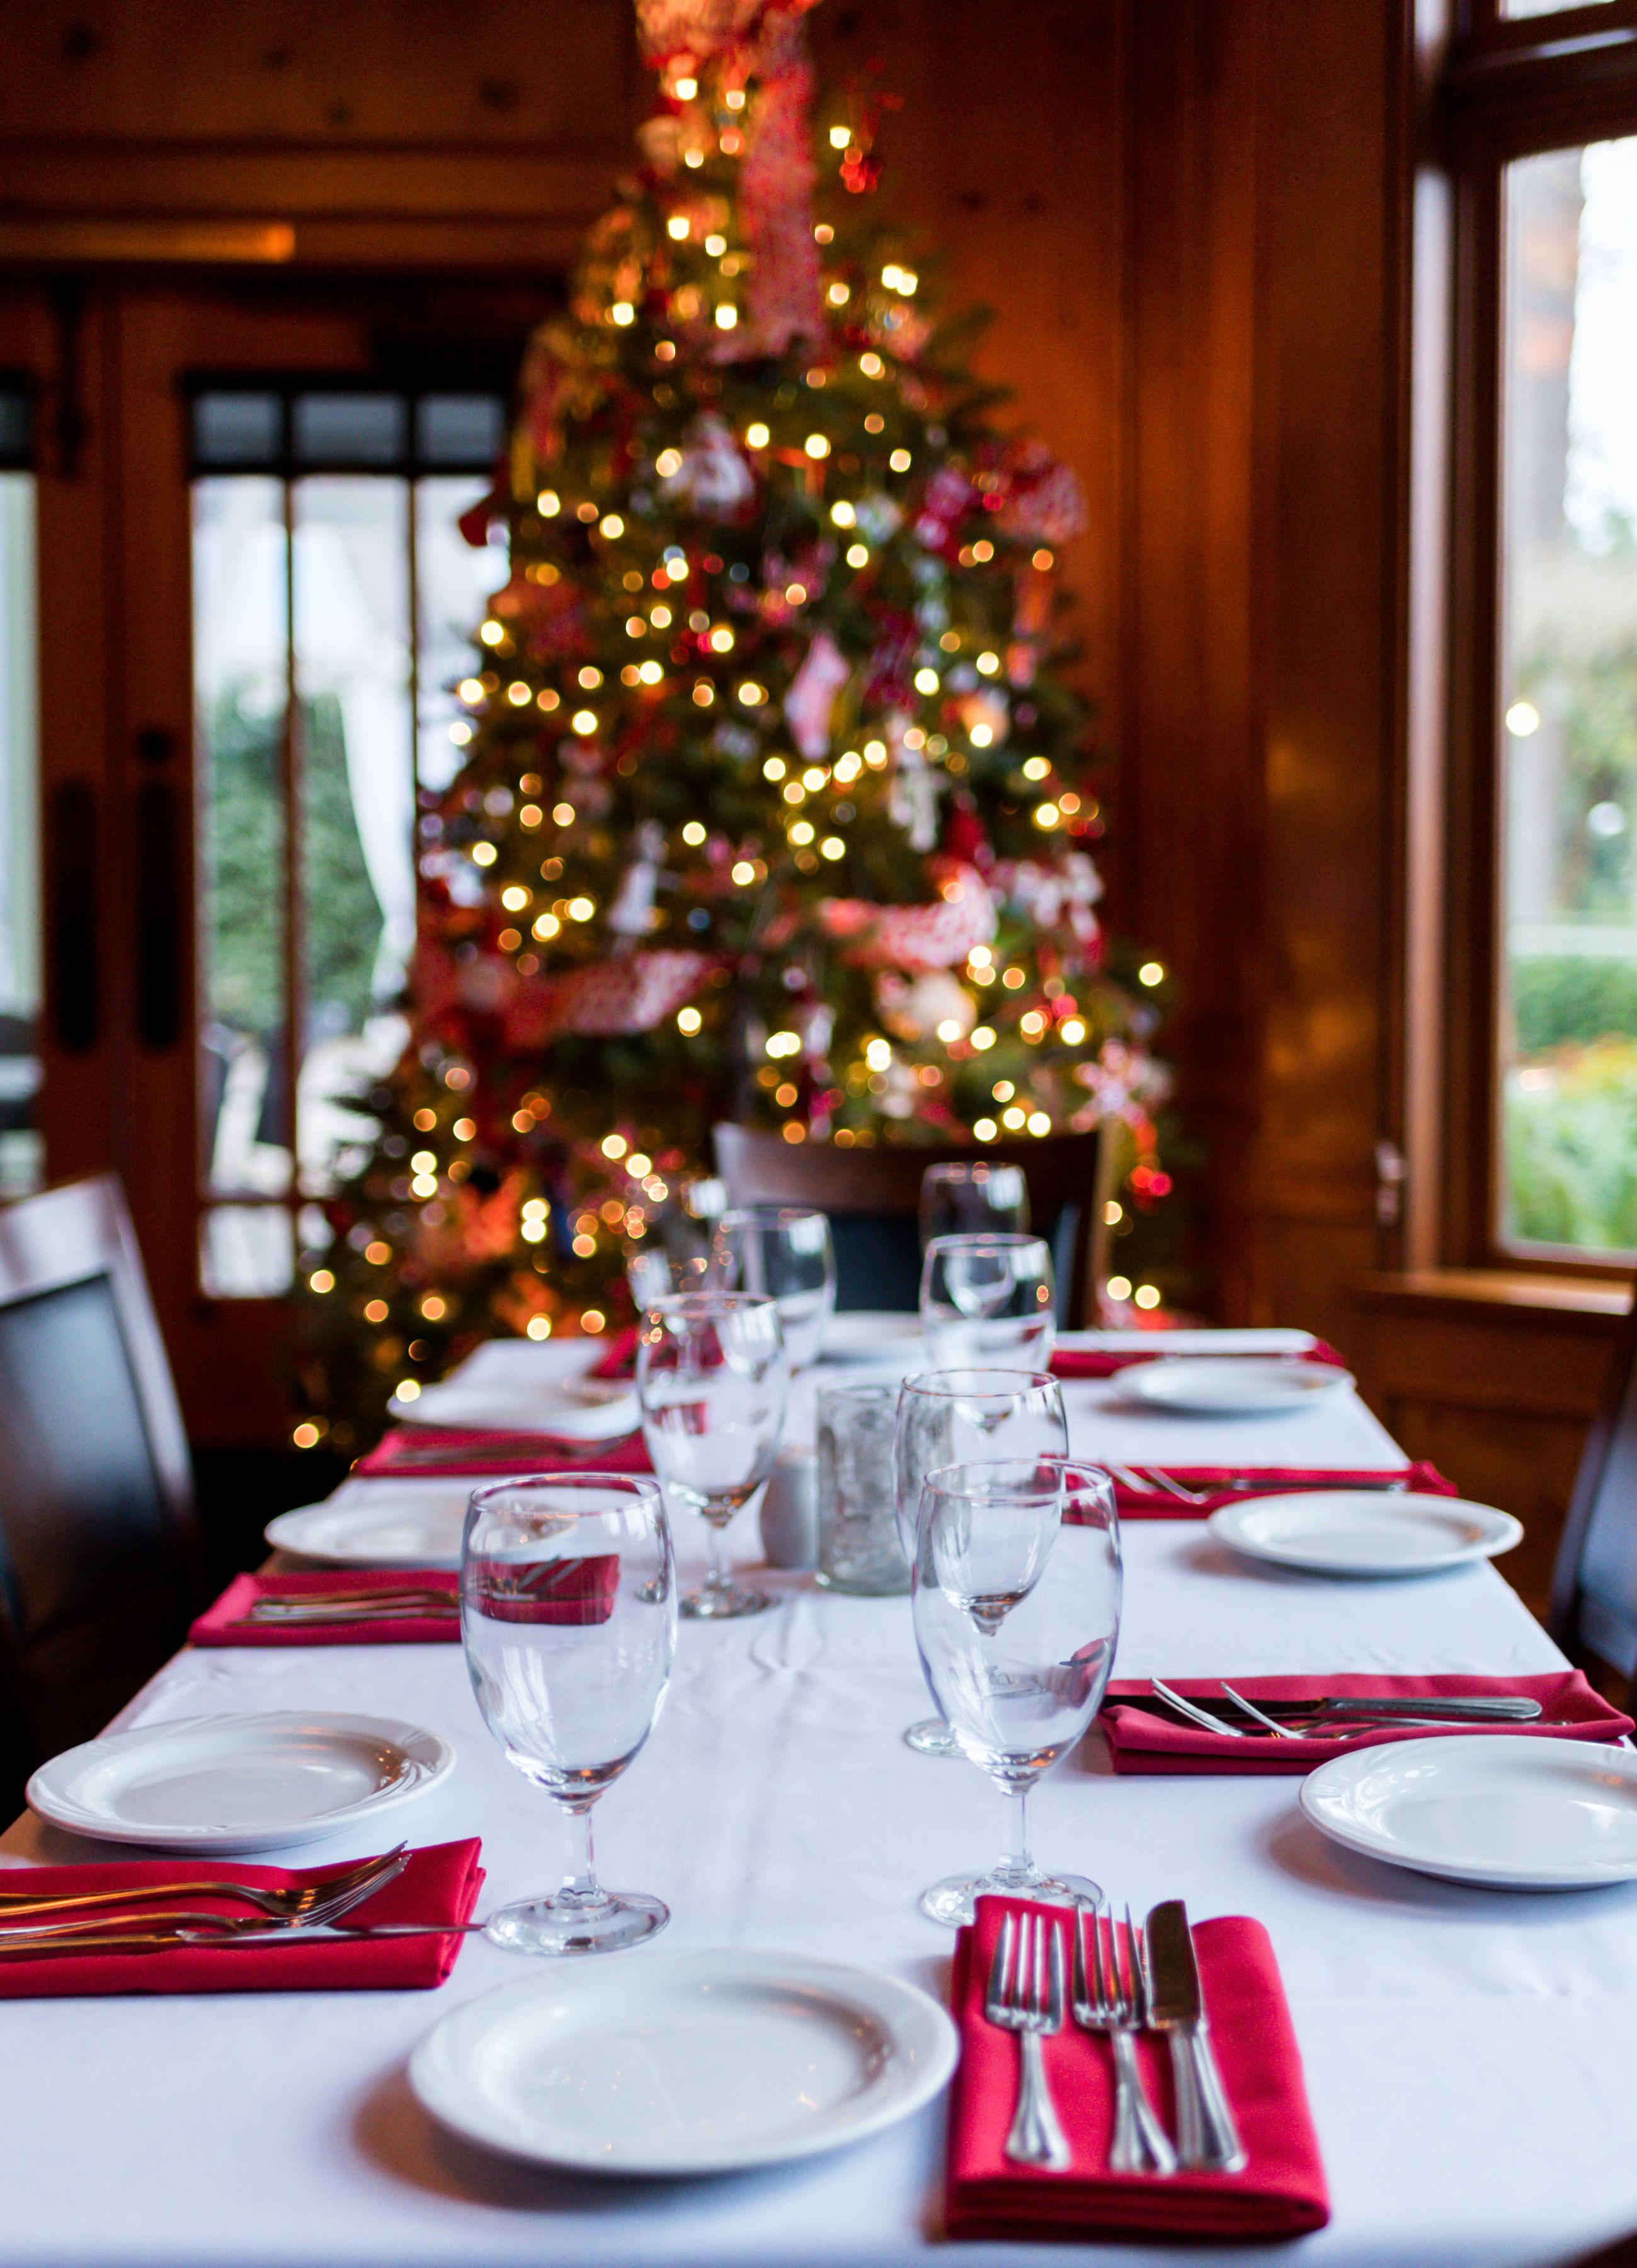 Enjoy a meal by the Christmas tree.